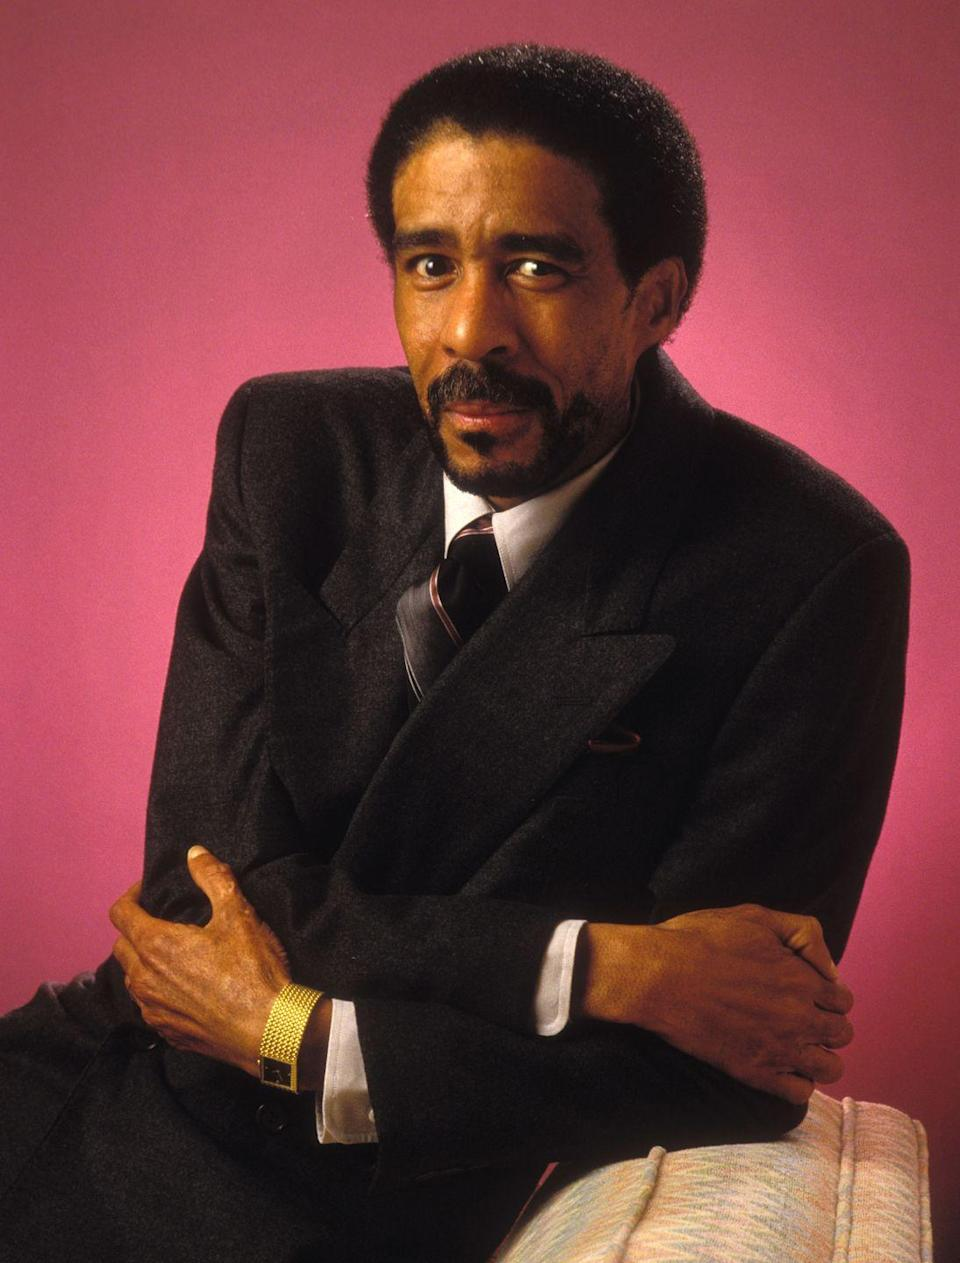 <p>In what can be considered one of the stranger moments of 1980, Richard Pryor doused his body with rum, set himself on fire and ran down his neighborhood street in California on June 9th. Fortunately, Pryor was stopped and given medical attention allowing him to not only survive, but continue his career in comedy. </p>